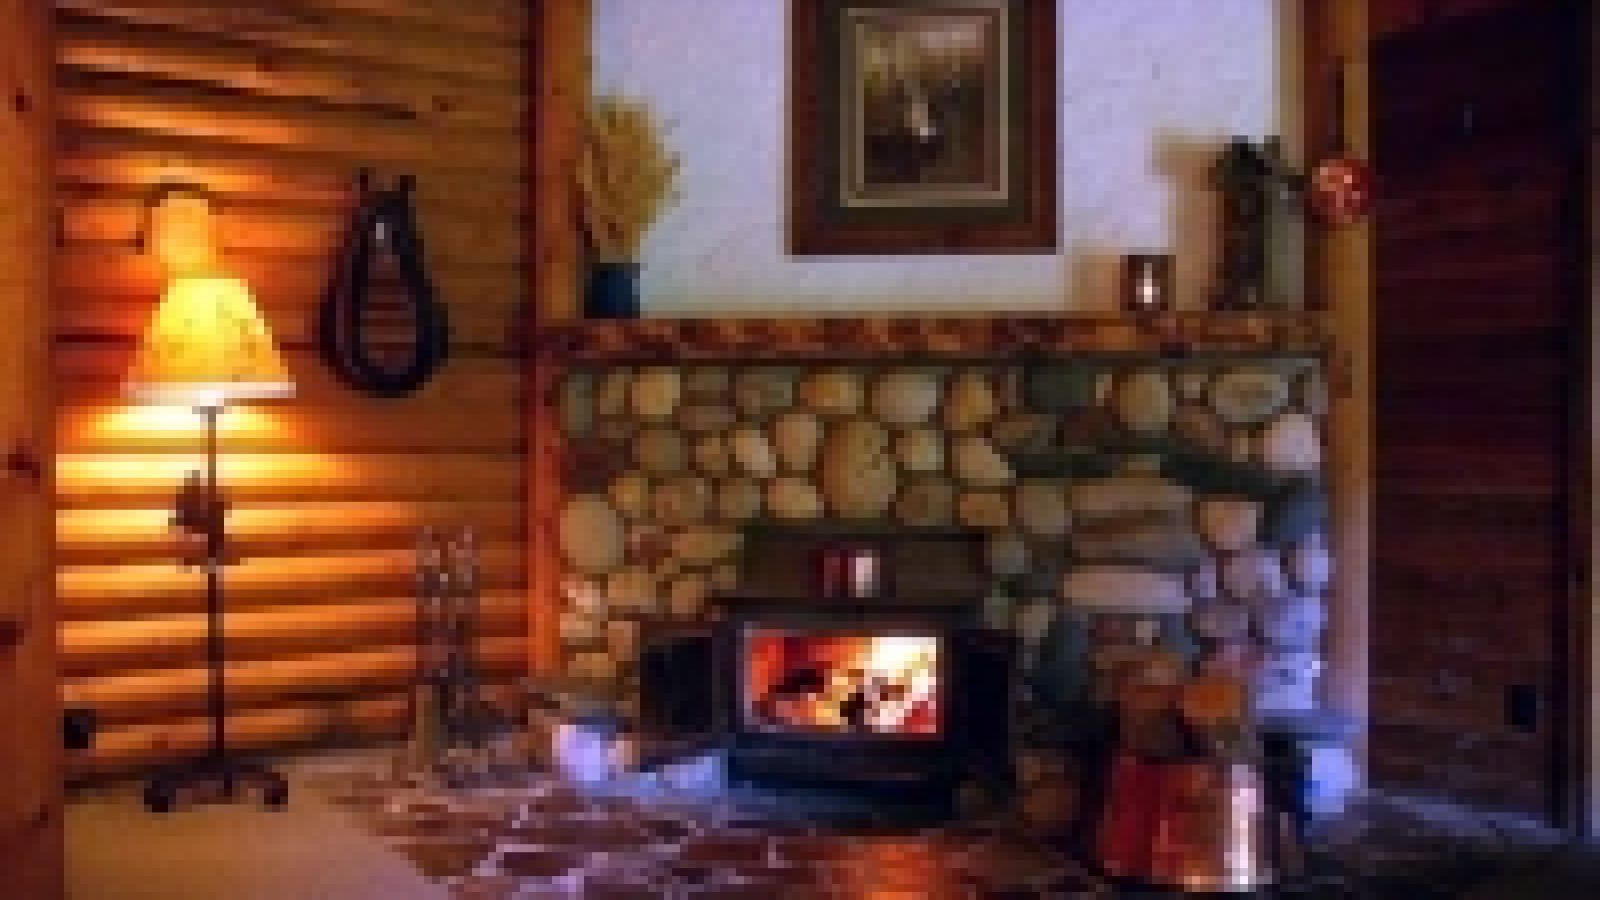 Log cabins are romantic and private.